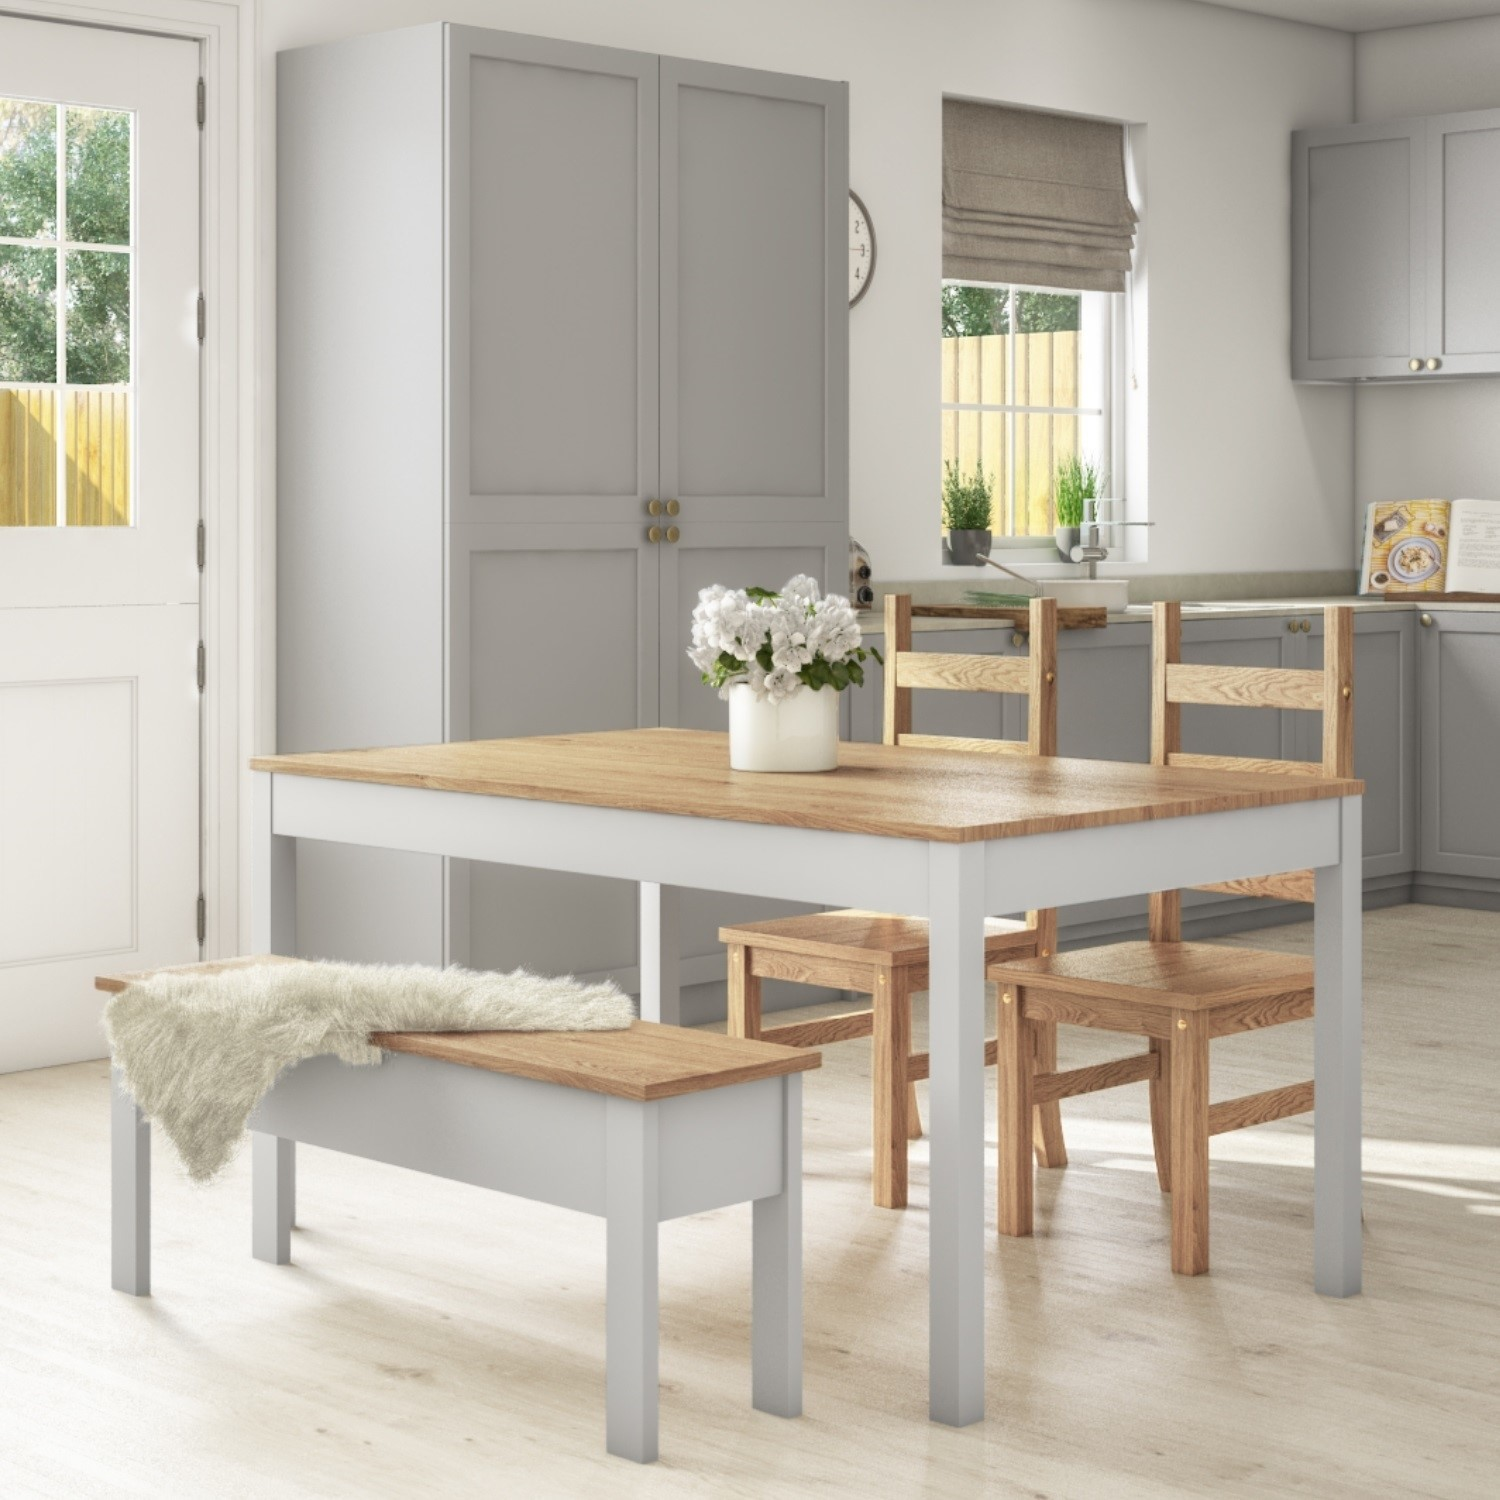 Emerson grey & pine dining table with 9 chairs & 9 bench